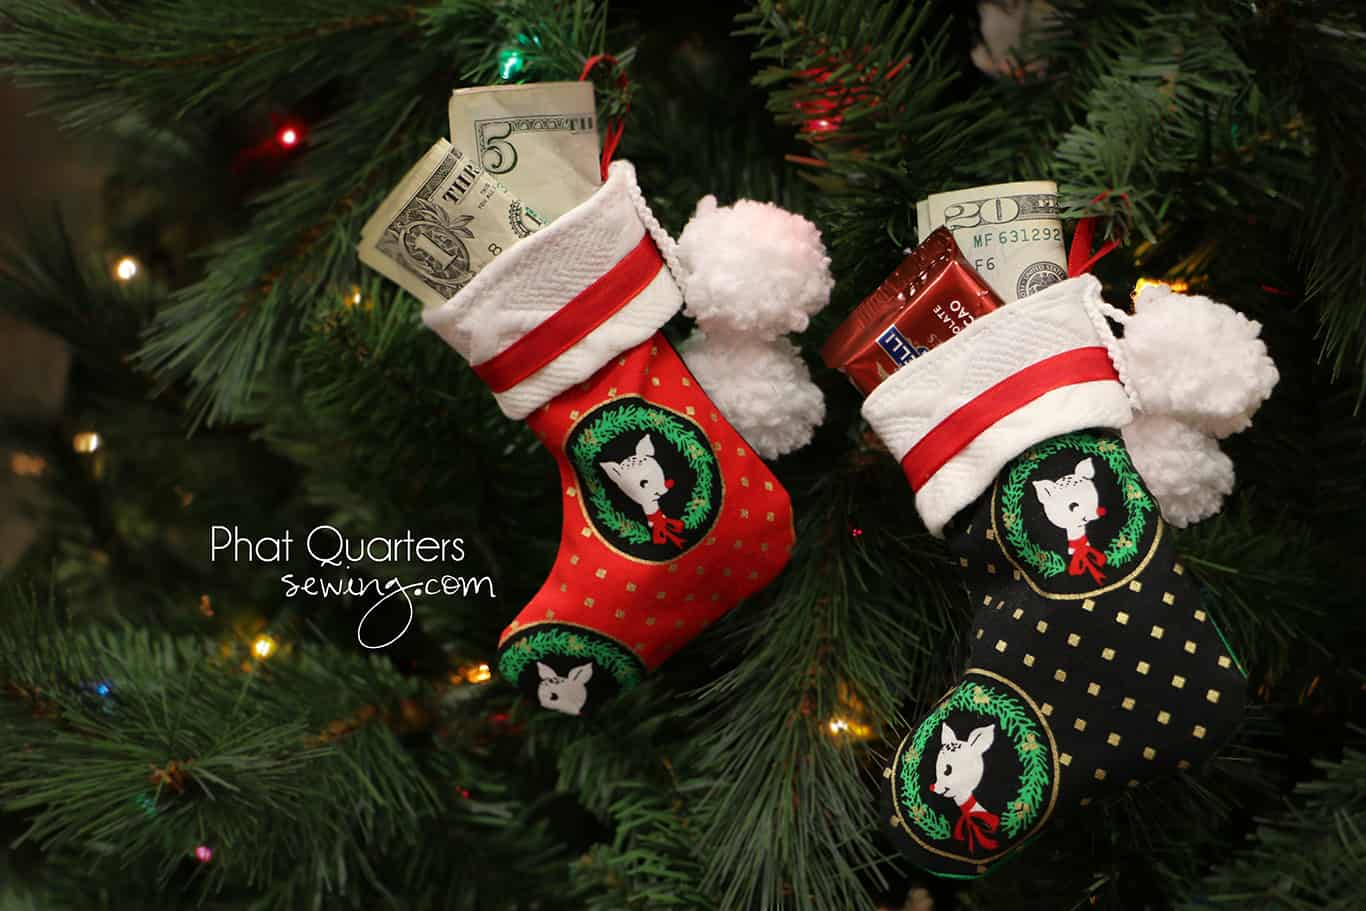 Small Christmas stockings for giving money and gift cards